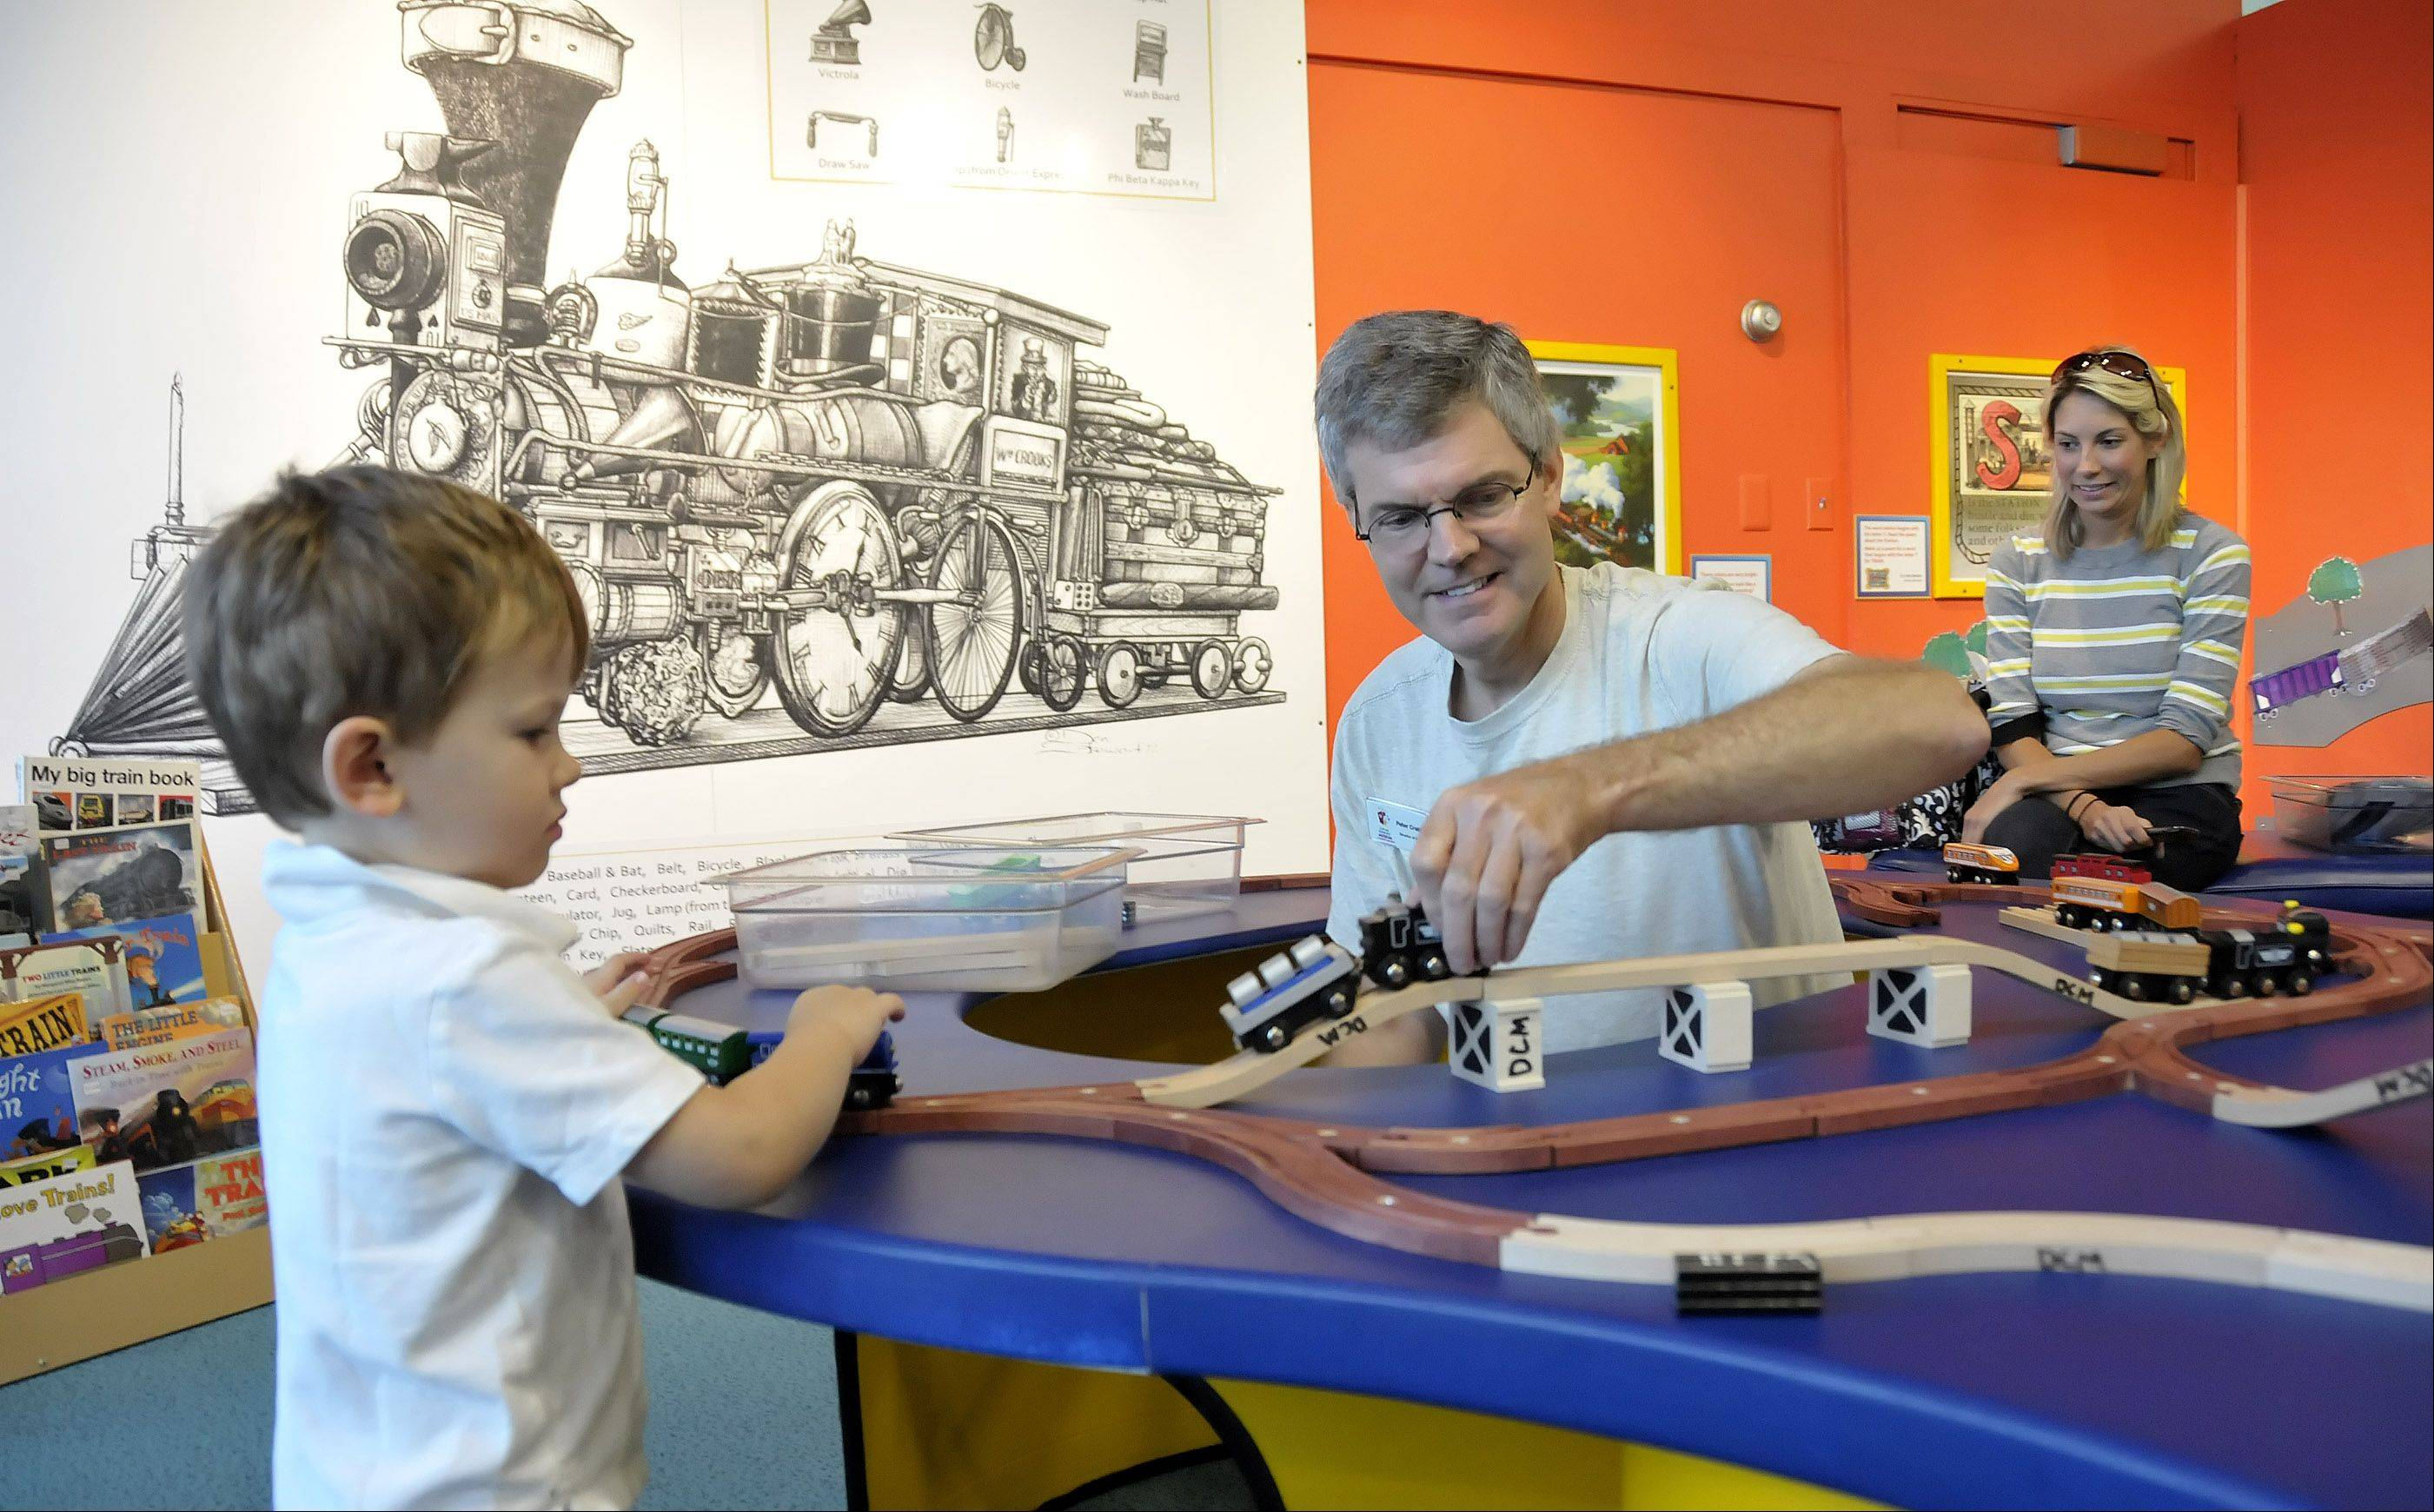 DuPage Children's Museum exhibit director Peter Crabb, center, demonstrates one of the wooden trains for James Duncan, 2. The wooden trains that kids can push around the tracks are a new part of the updated exhibit.